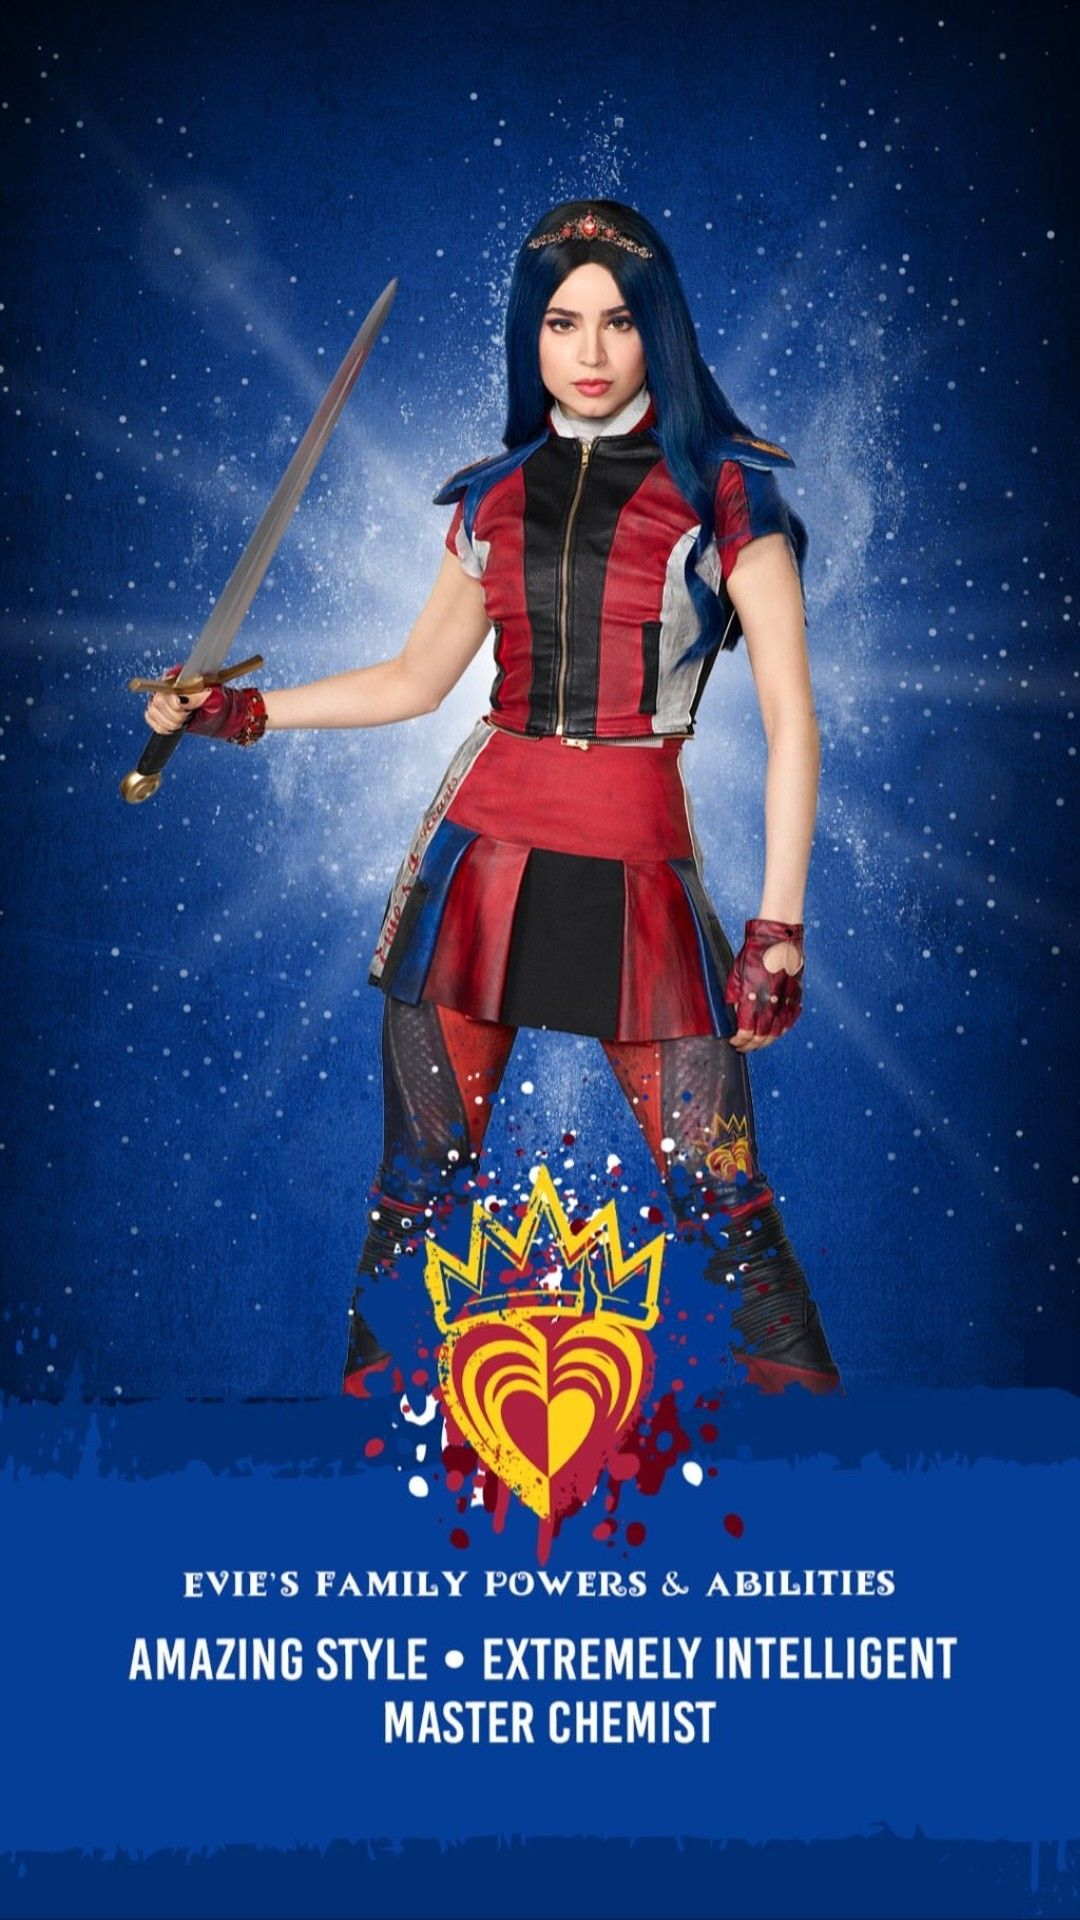 19 Evie Ideas In 2021 Evie Descendants Evie Disney Channel Descendants